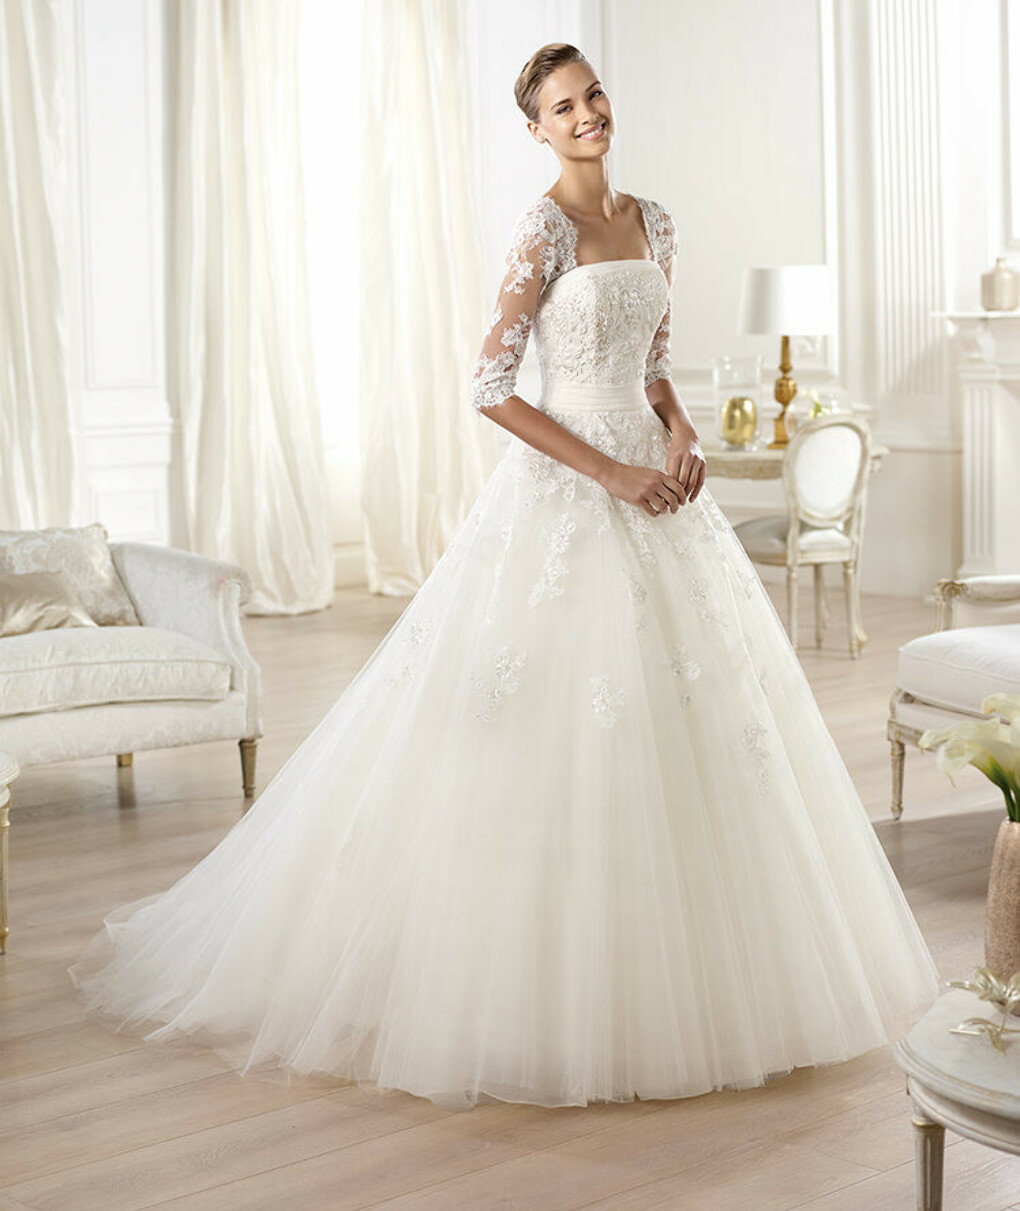 Ocanto wedding dress by Pronovias